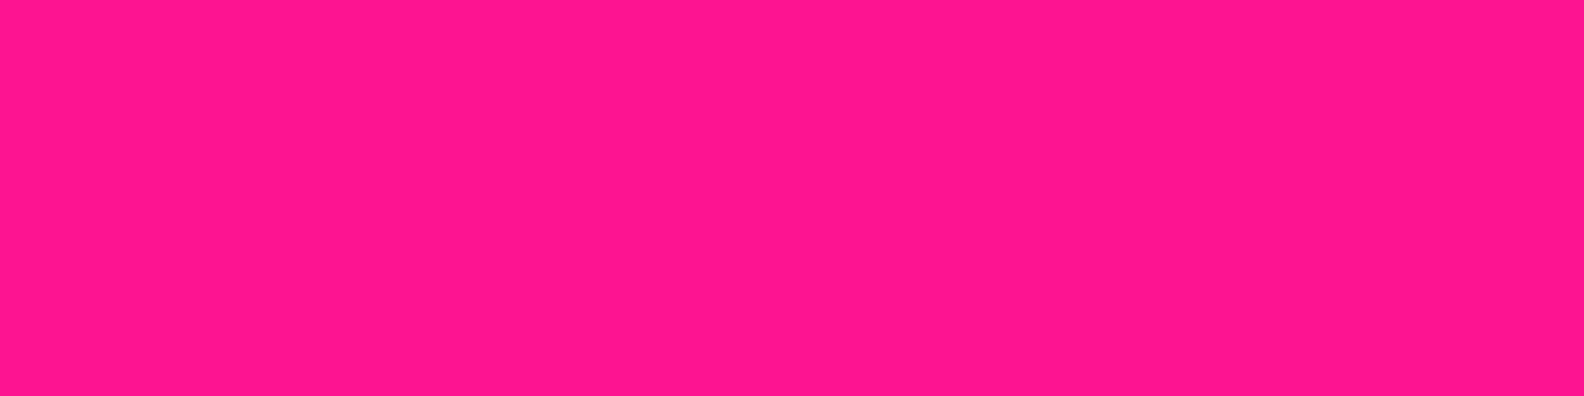 1584x396 Fluorescent Pink Solid Color Background